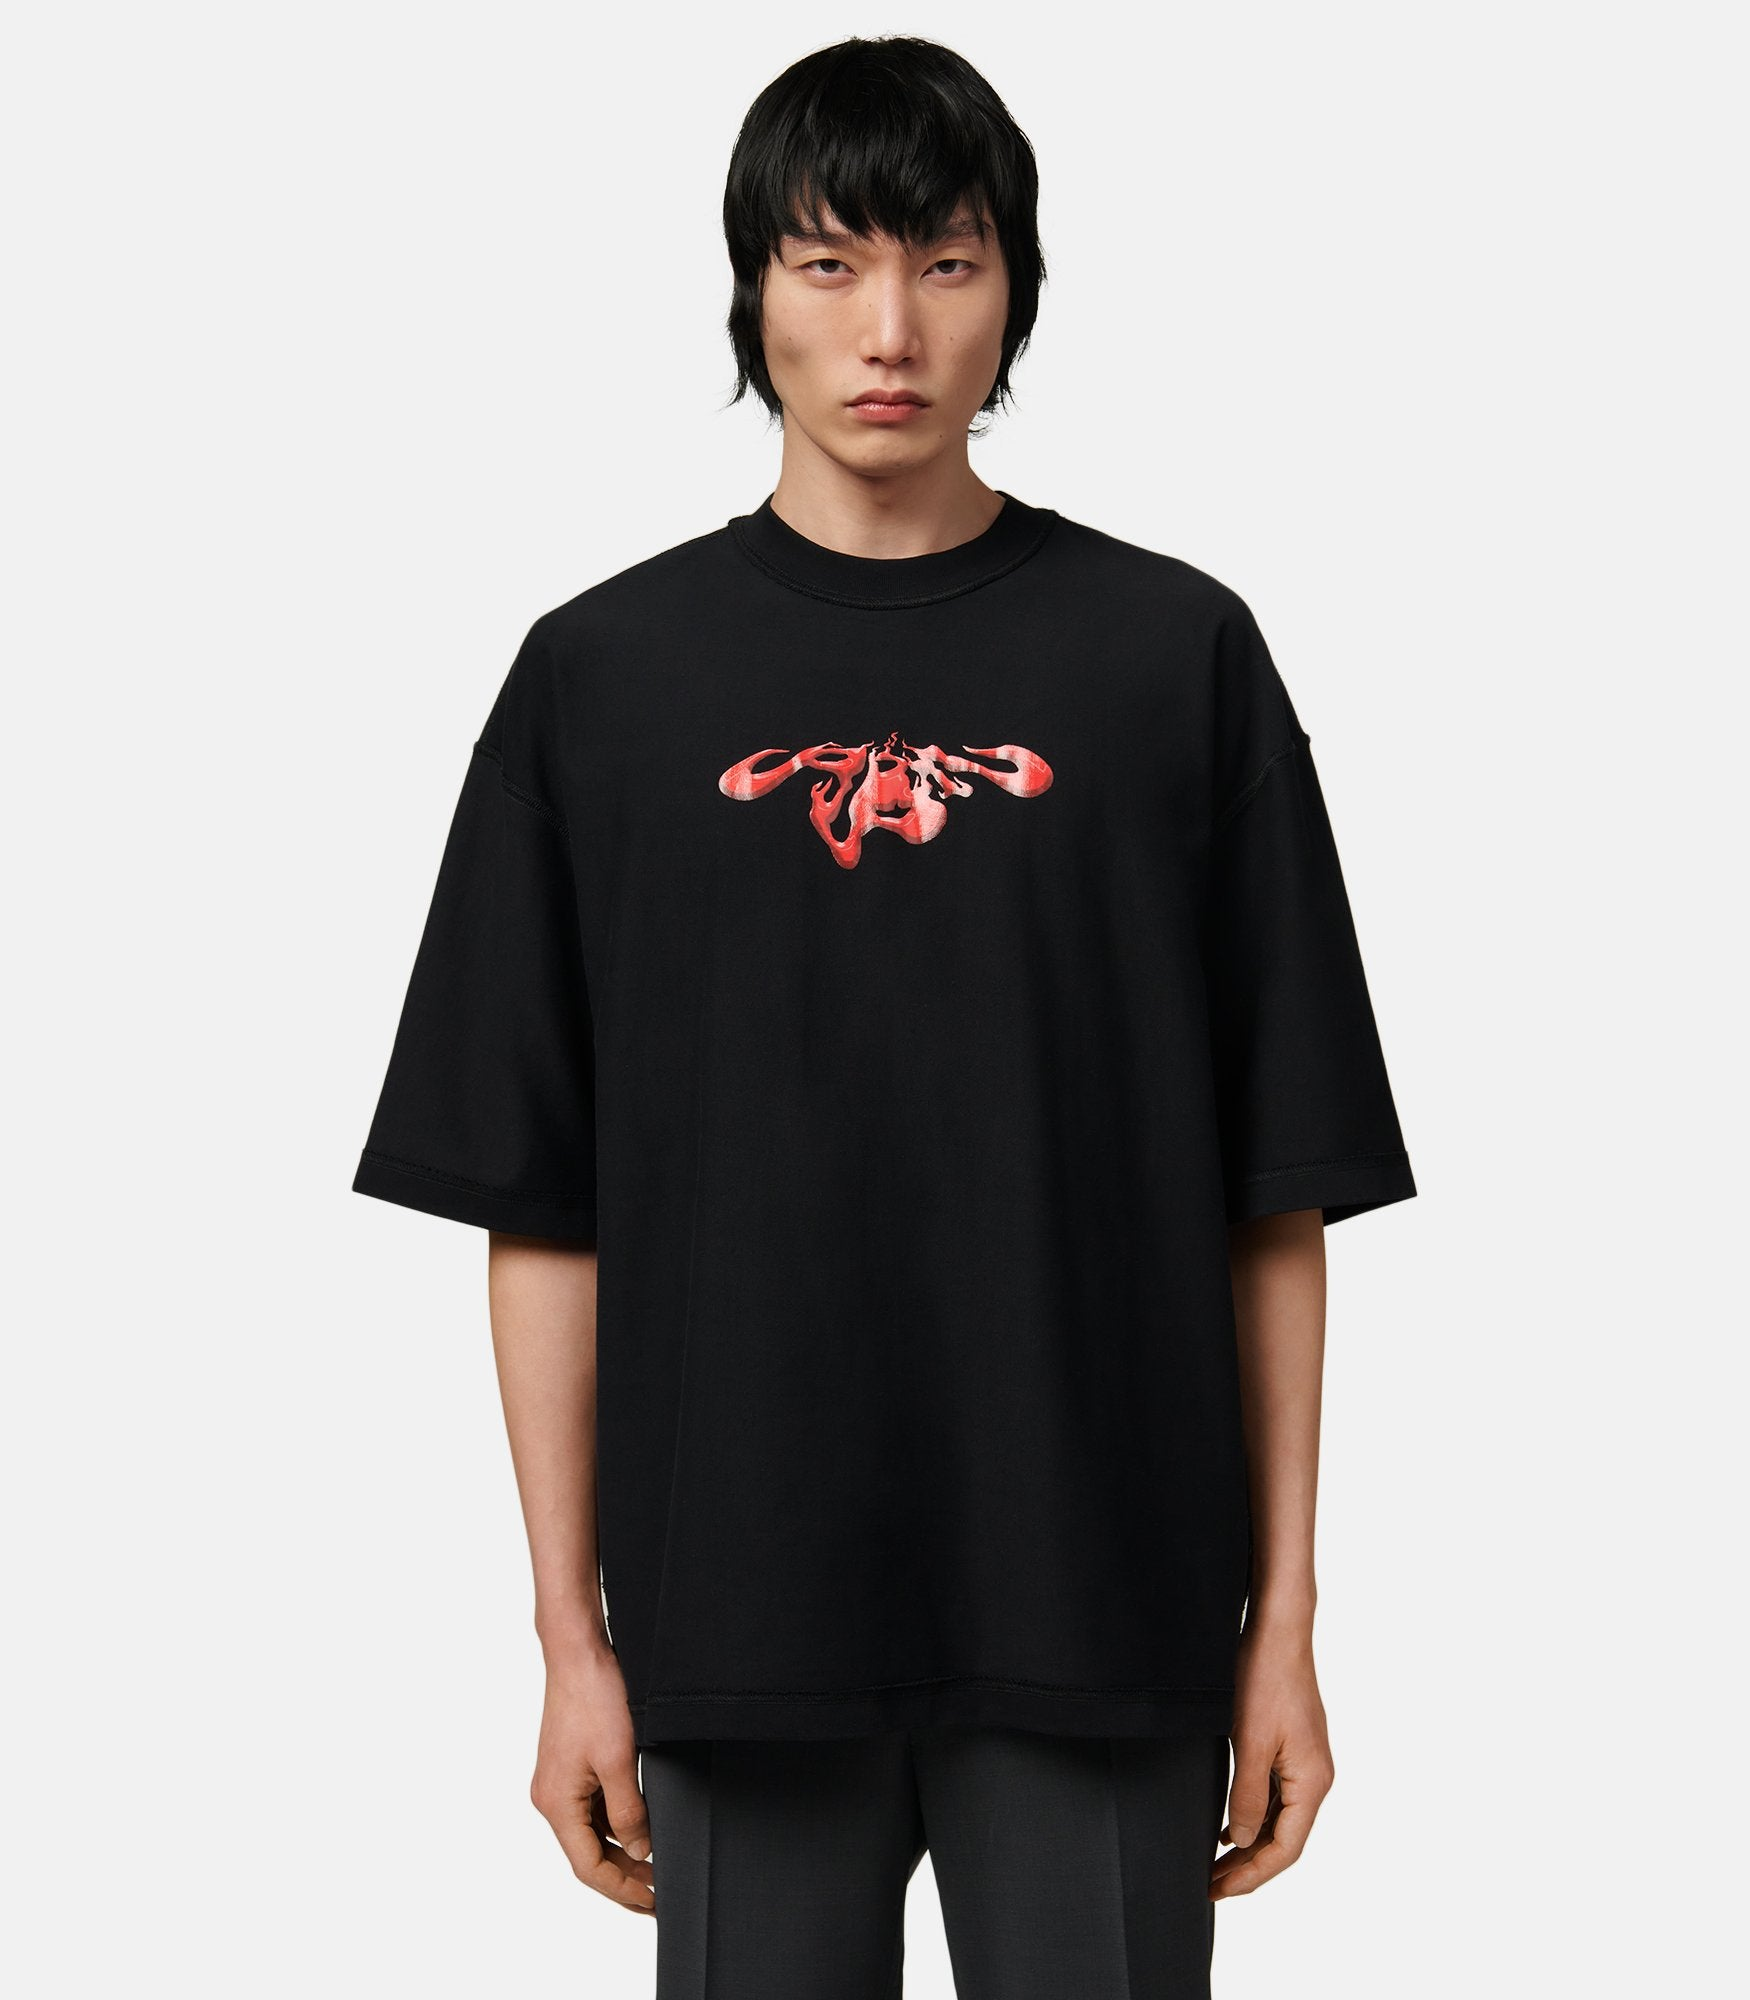 Reversed Flame T-shirt